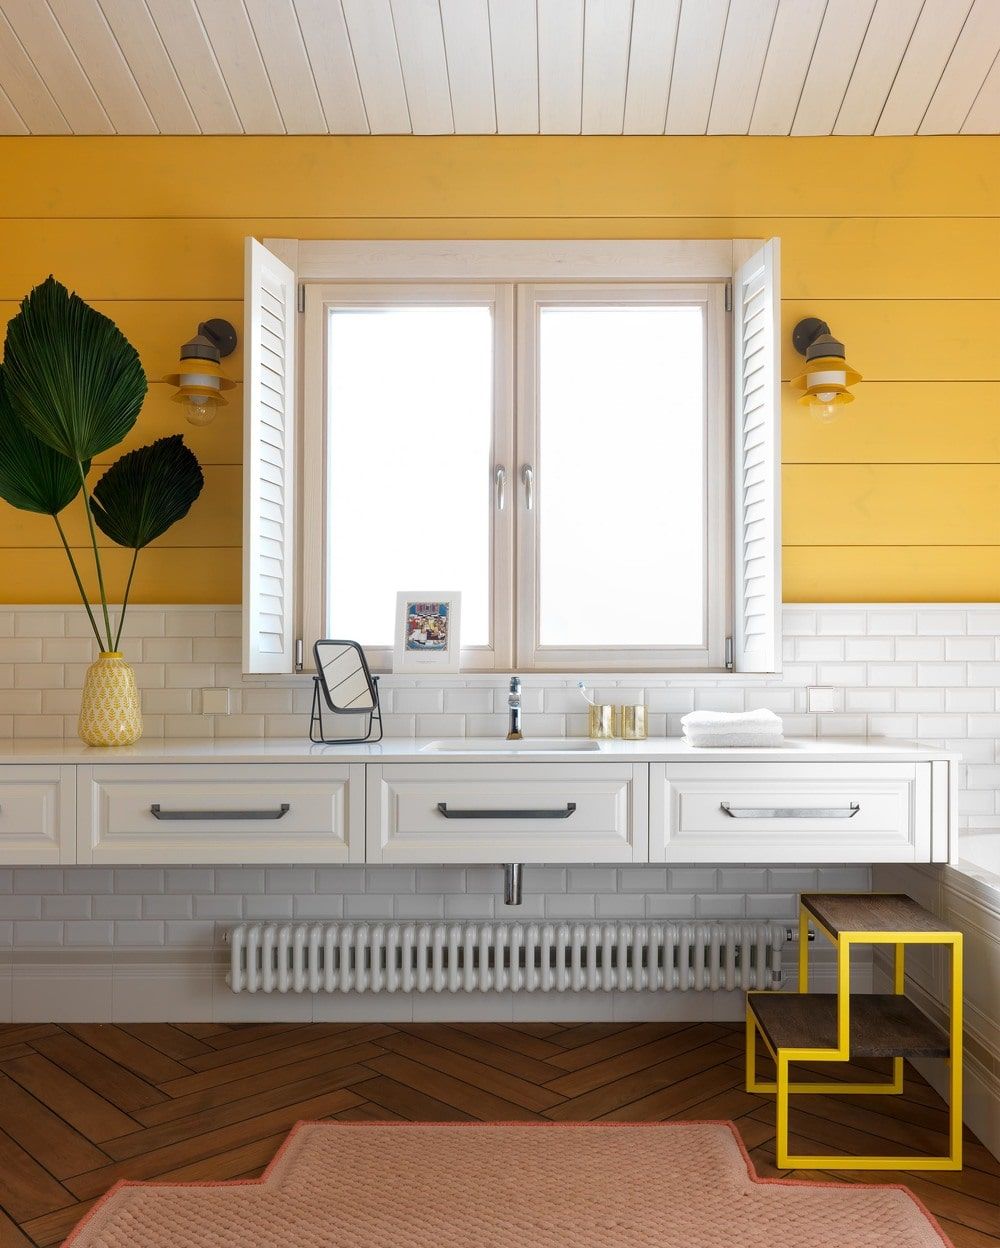 The other bathroom has a sunny yellow shiplap wall to complement the white subway tiles of the backsplash above the white floating vanity with built-in drawers.